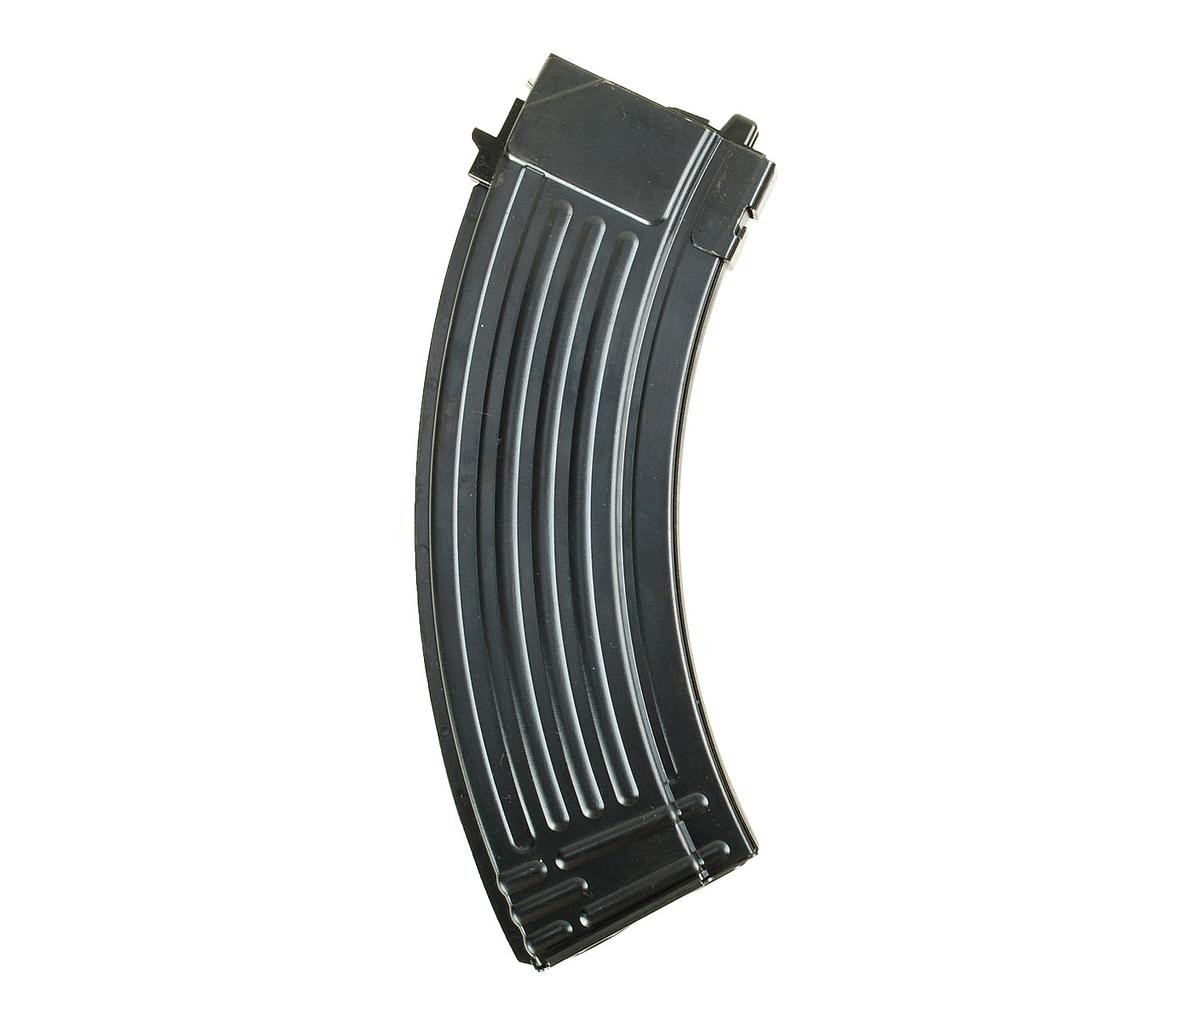 30 Round Gas Magazine for AK GBB series (metal shell-Black)